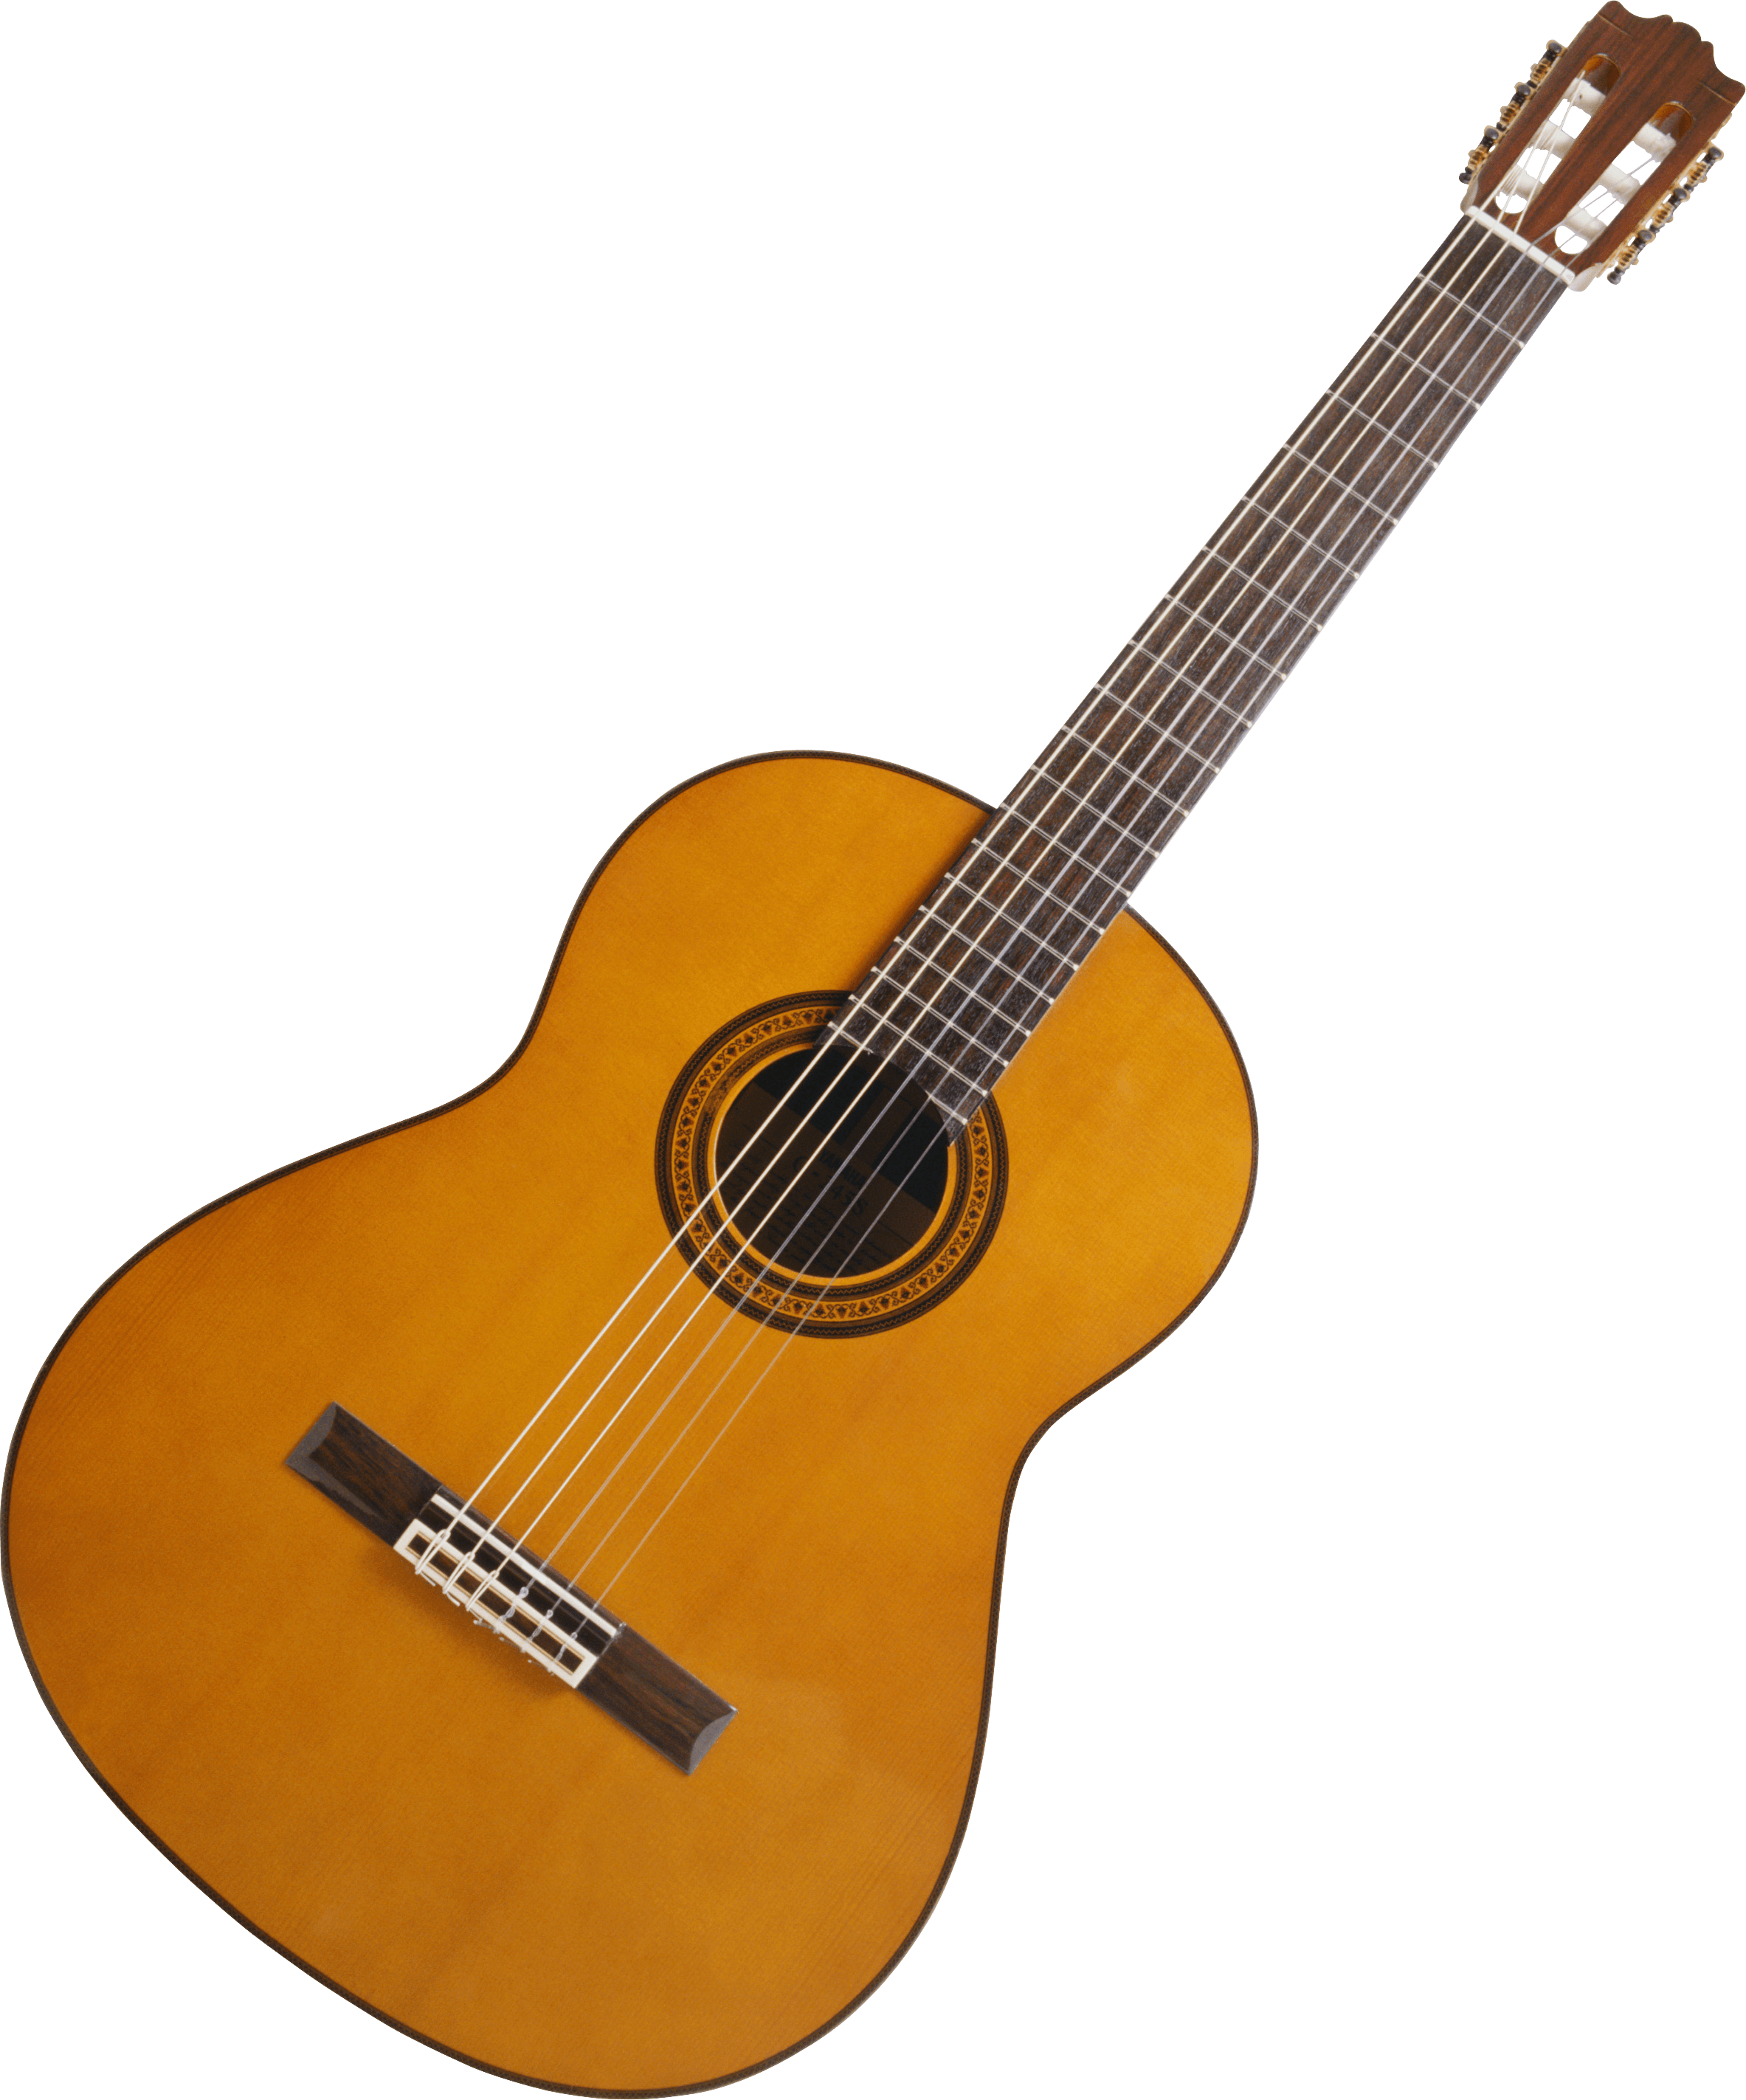 Guitar png transparent images. Musician clipart country music